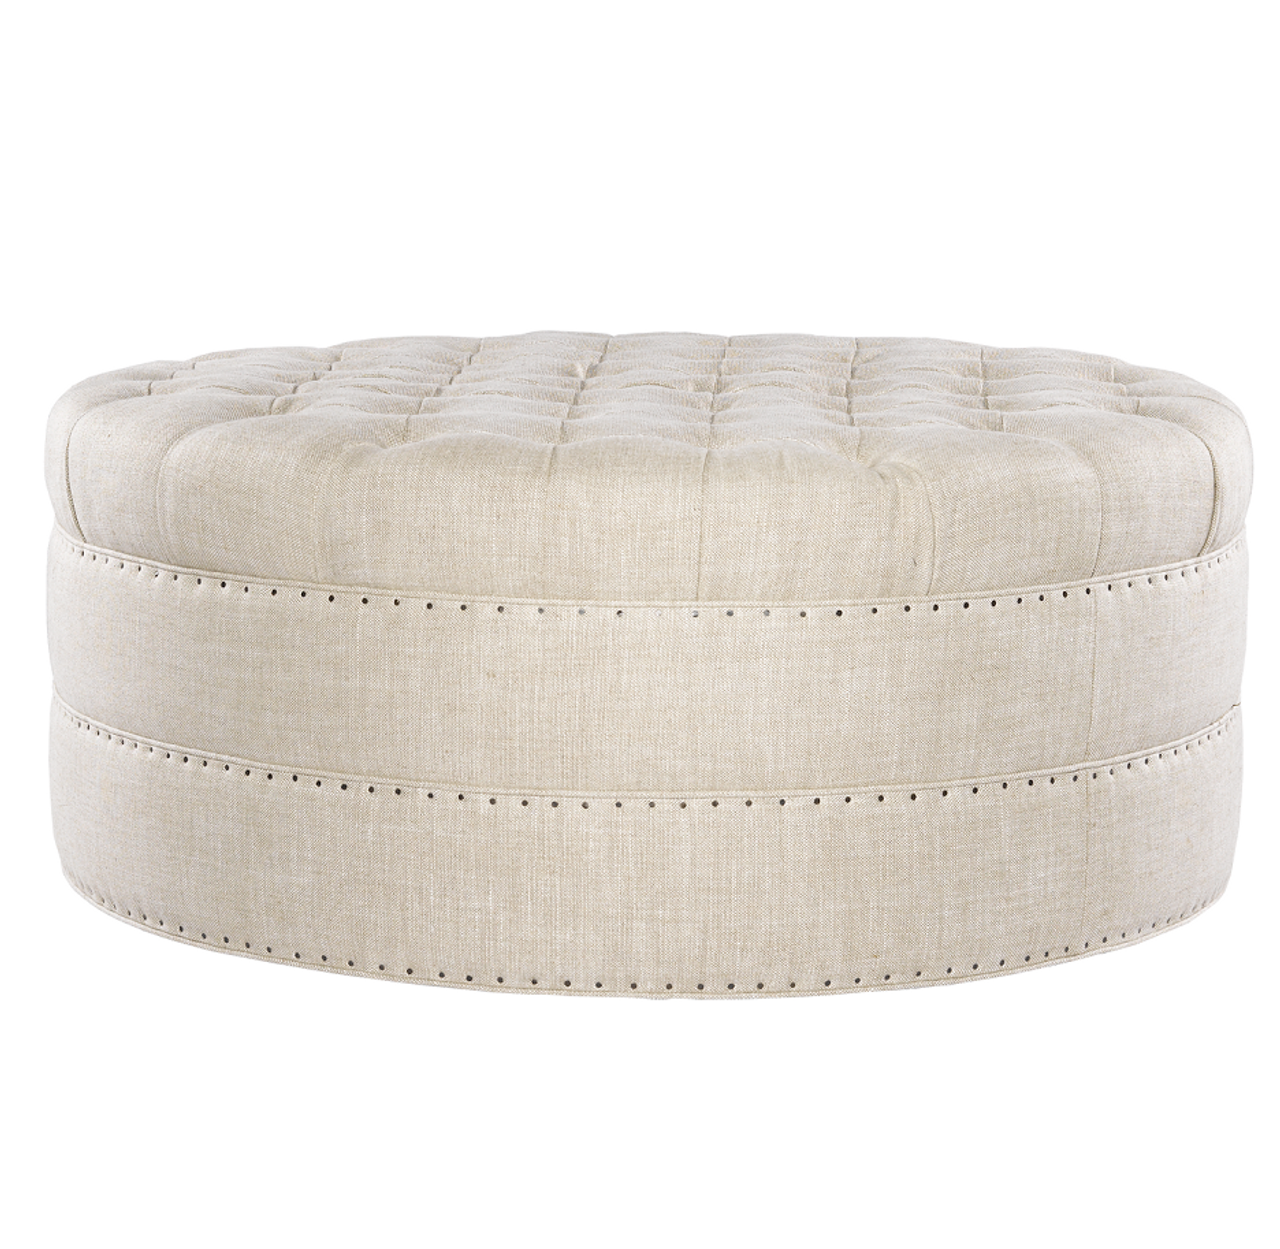 Phenomenal Grand Linen Upholstered Round Tufted Ottoman Gamerscity Chair Design For Home Gamerscityorg